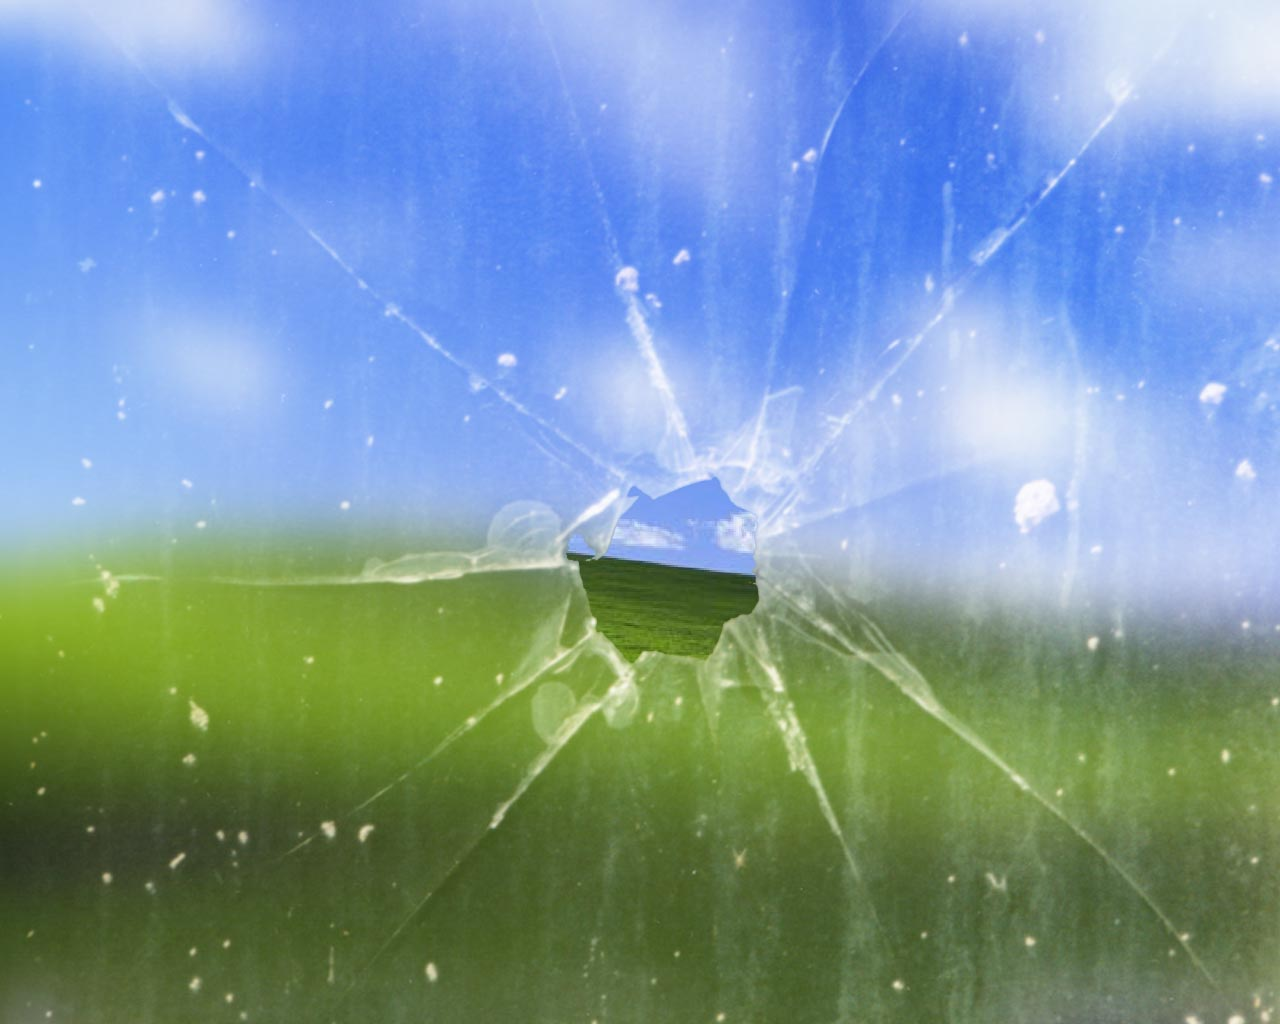 Cracked windows wallpaper wallpapersafari for Change background wallpaper your home screen